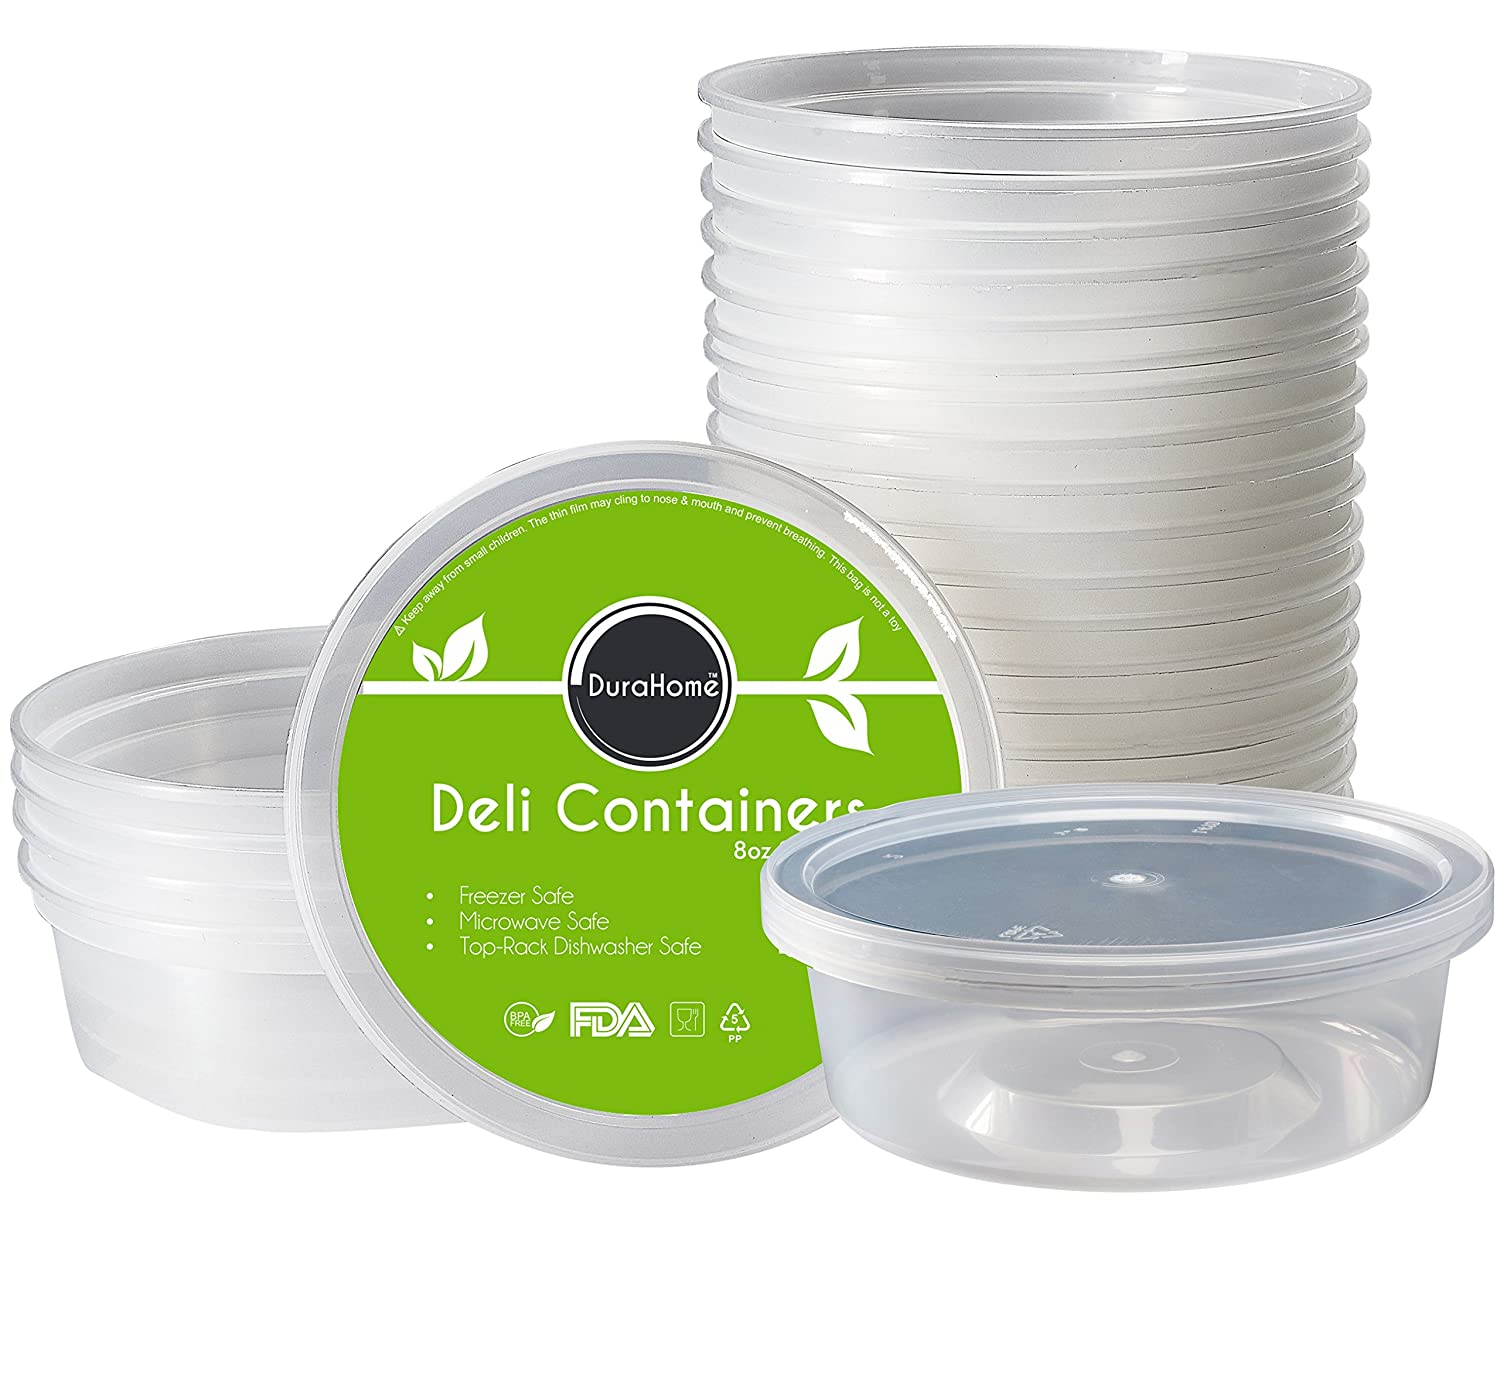 DuraHome - Deli Containers with Lids 8 oz. Leakproof - 40 Pack Plastic Microwaveable Clear Food Storage Container Premium Heavy-Duty Quality, Freezer & Dishwasher Safe